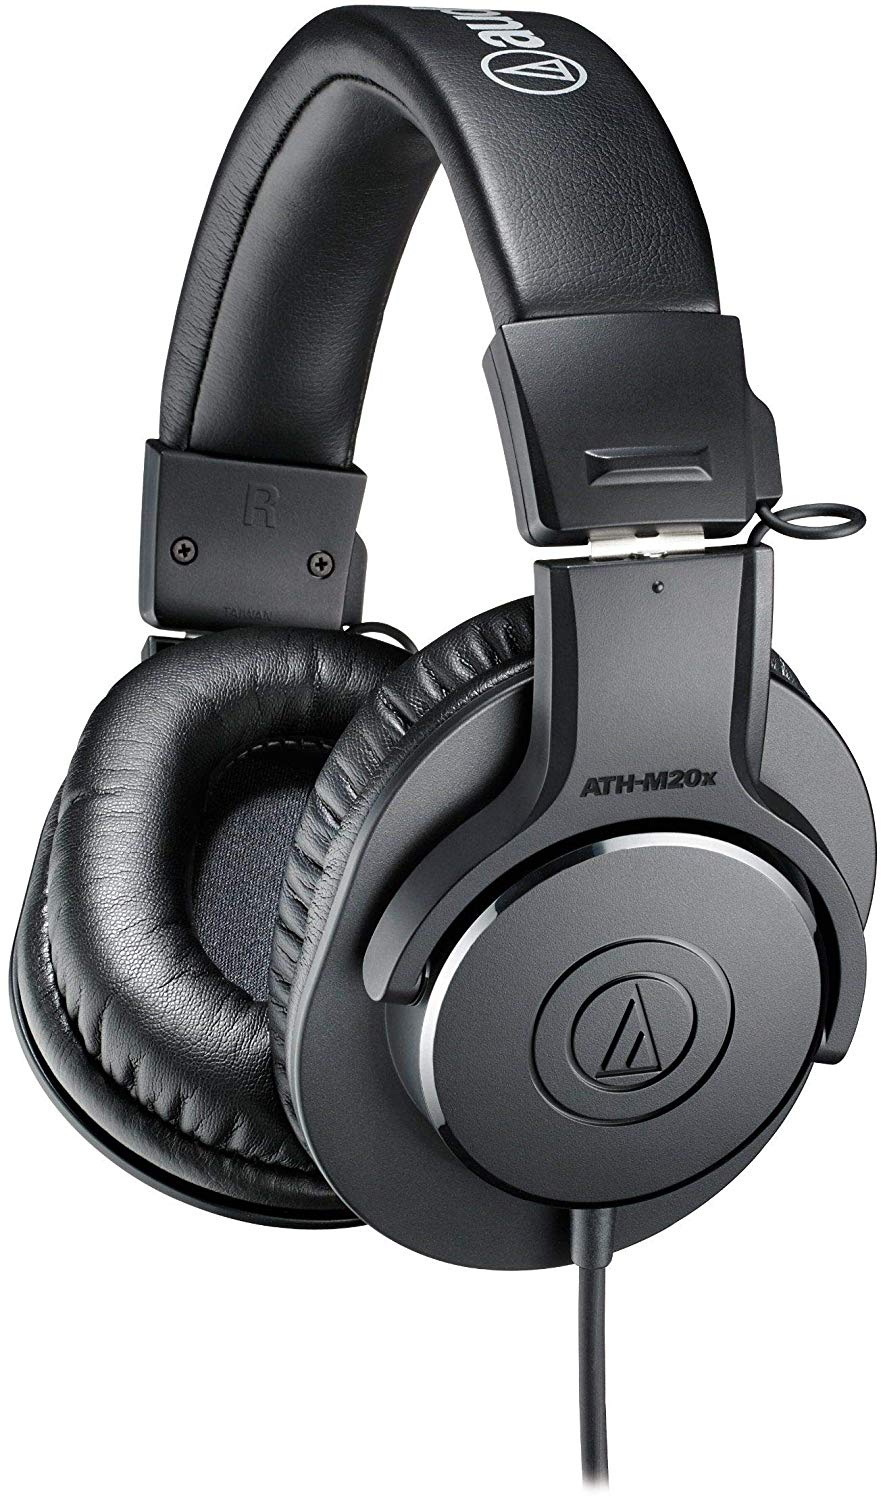 Audio-Technica ATH-M20x Monitor Headphones